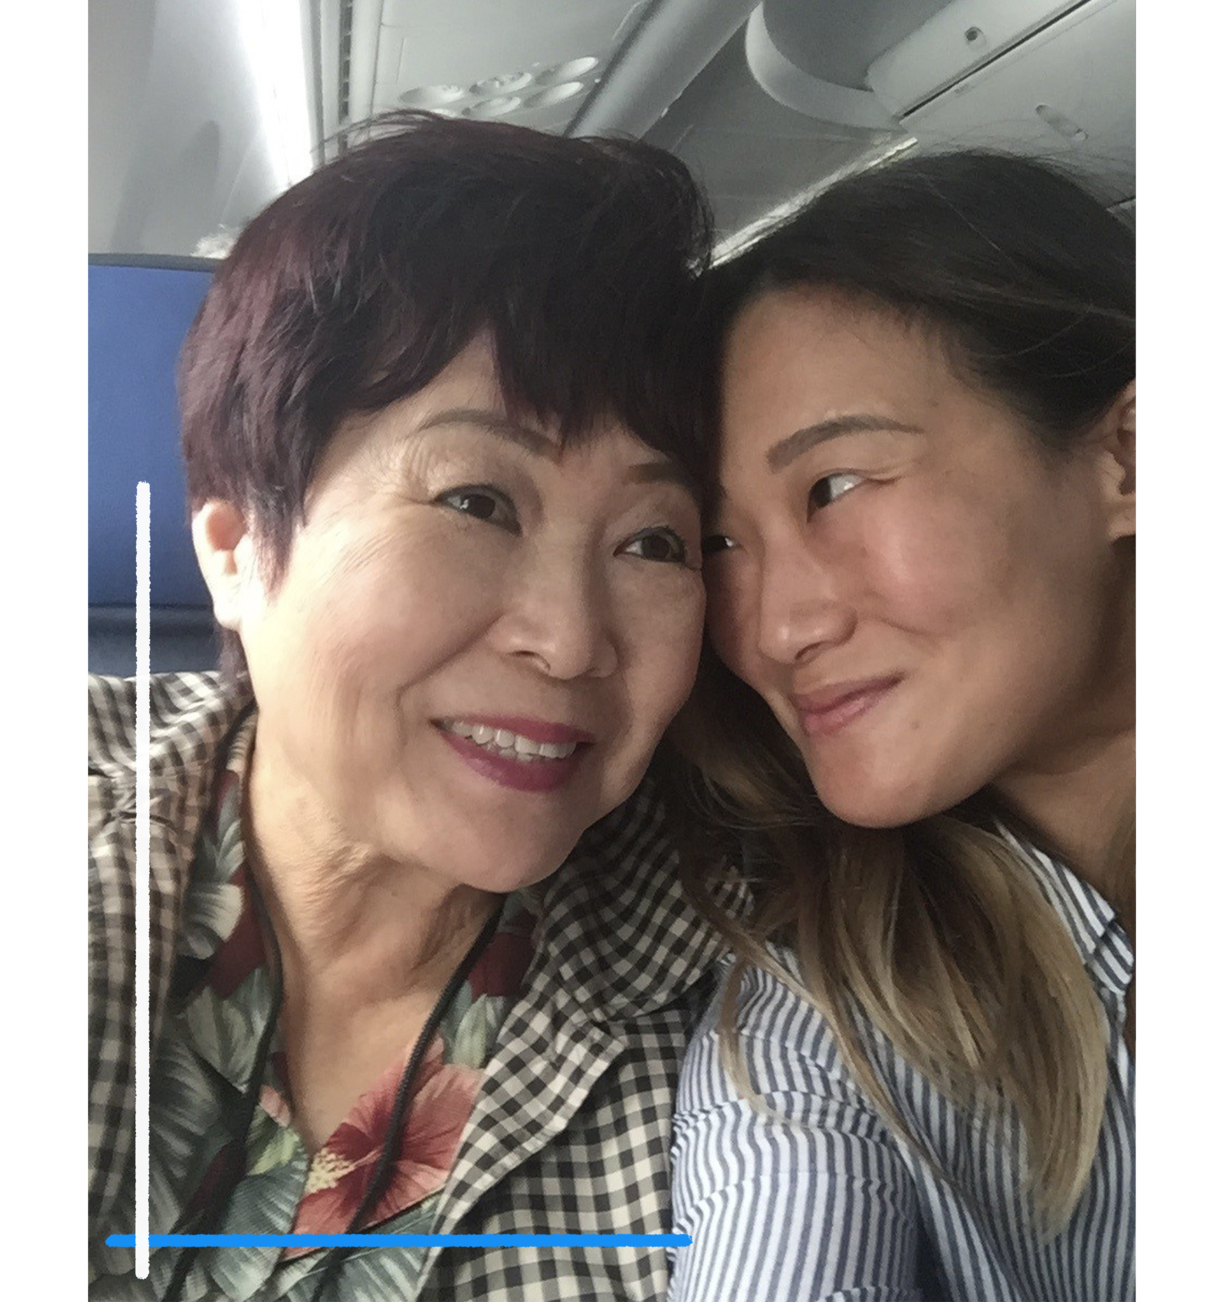 Barbara Yang, left, and Stephanie Yang on a plane to Taiwan in 2016. (Family photo)